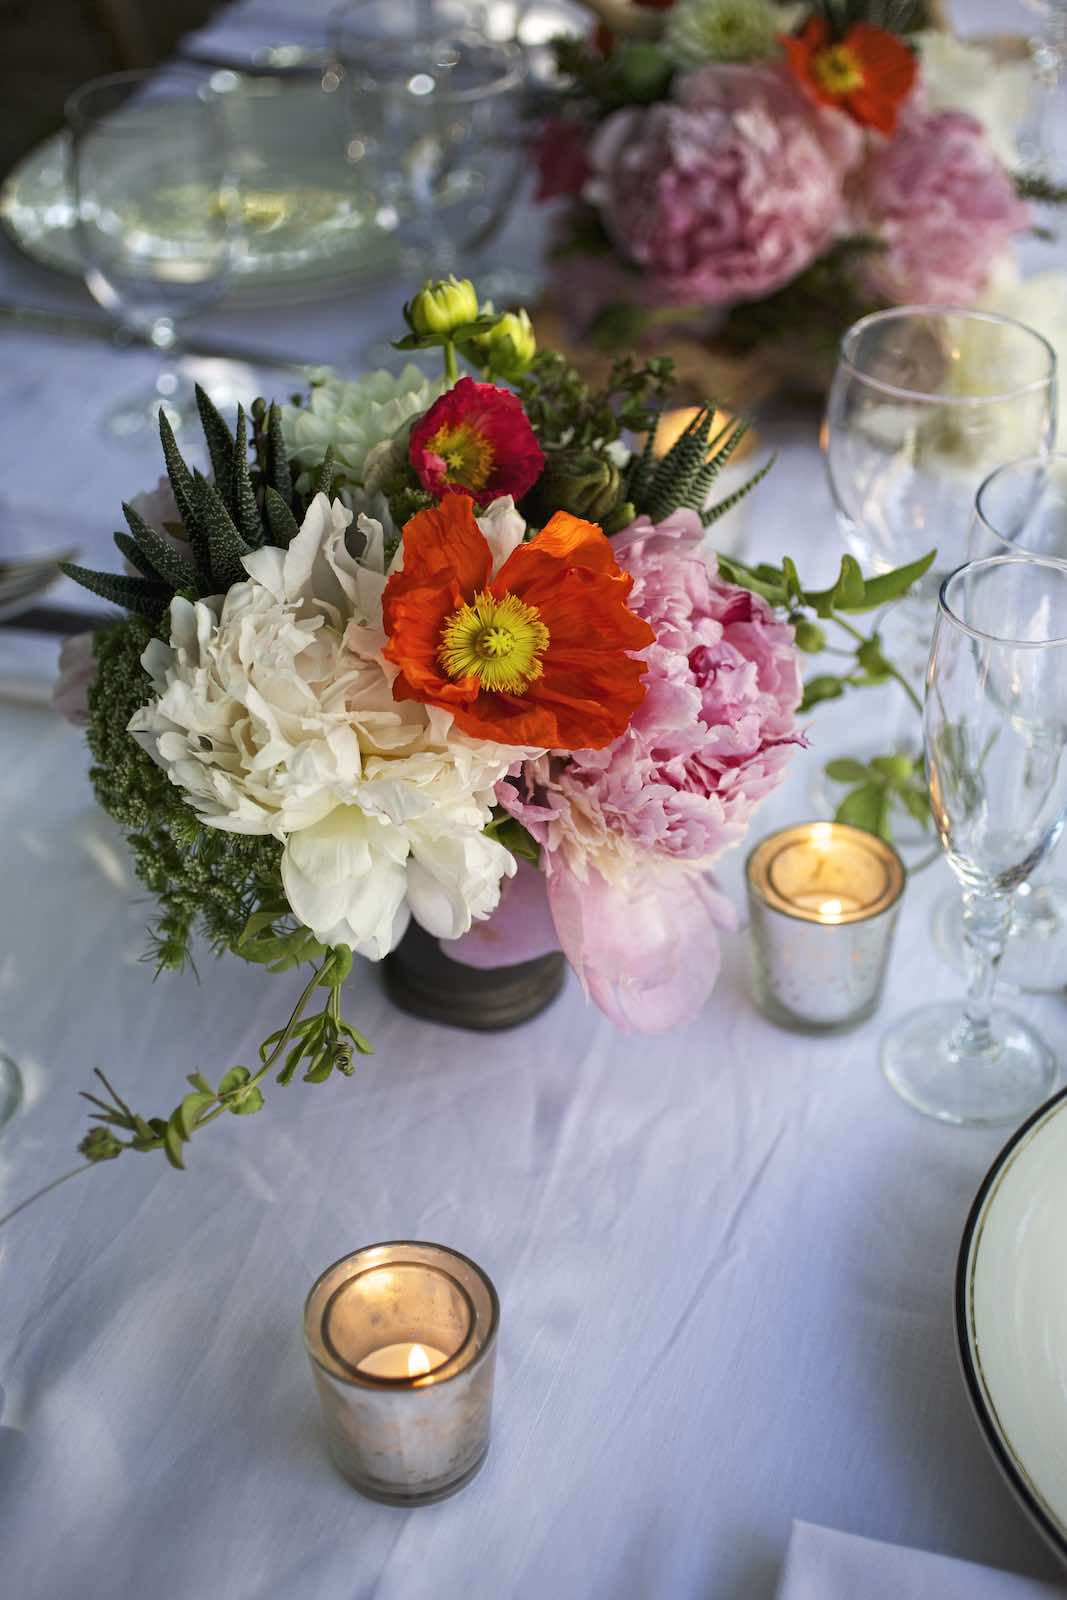 Jody Horton Photography - Vivid floral arrangement encircled by tea candles.